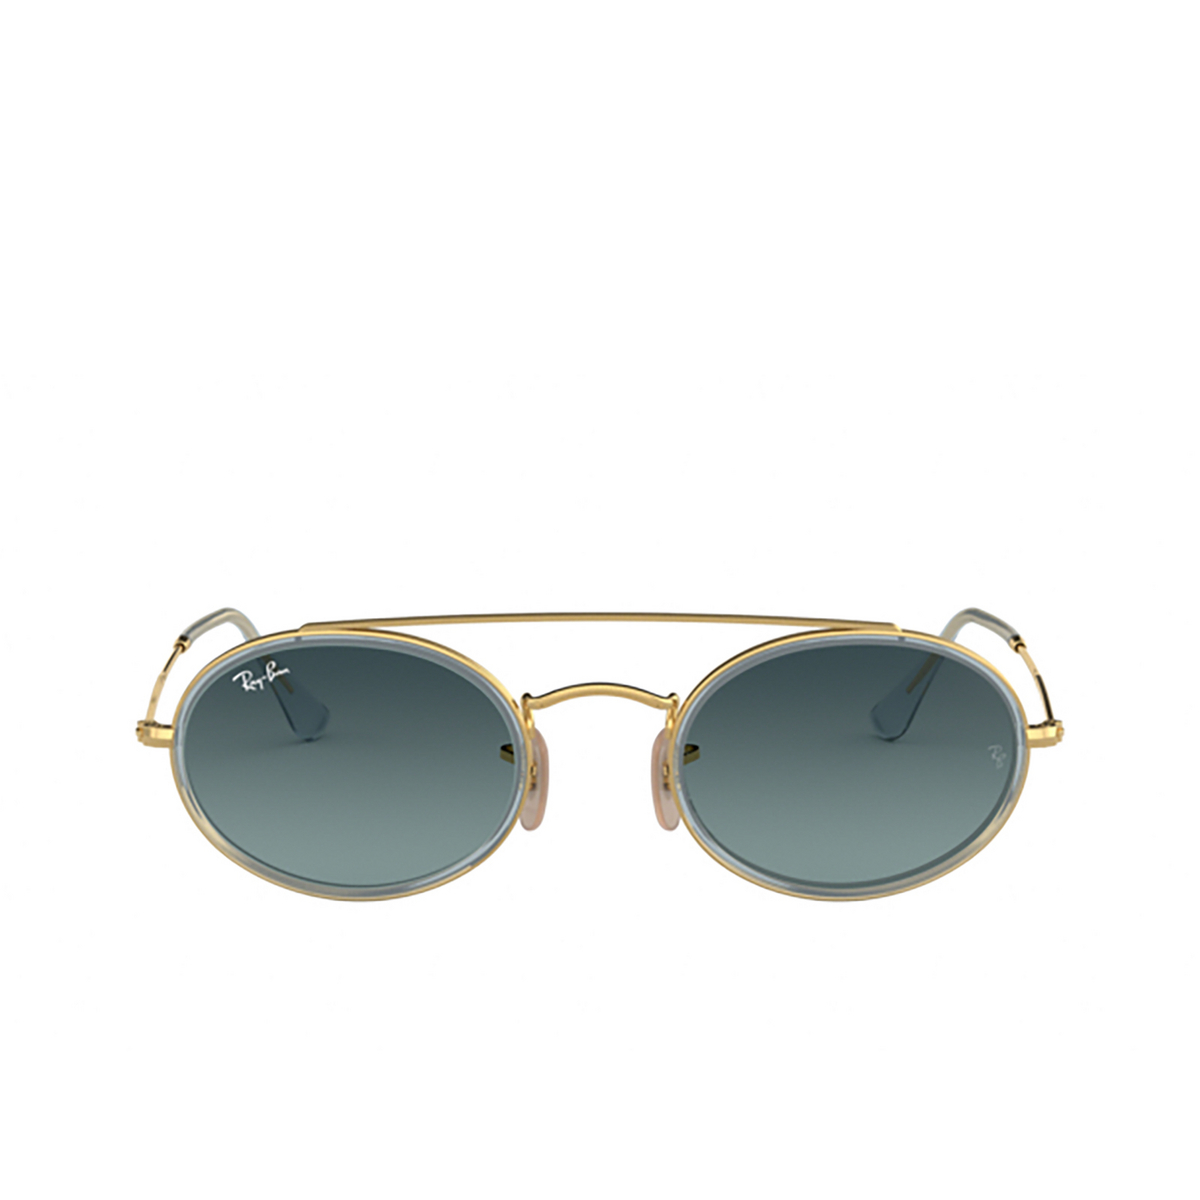 Ray-Ban® Oval Sunglasses: RB3847N color Arista 91233M - front view.